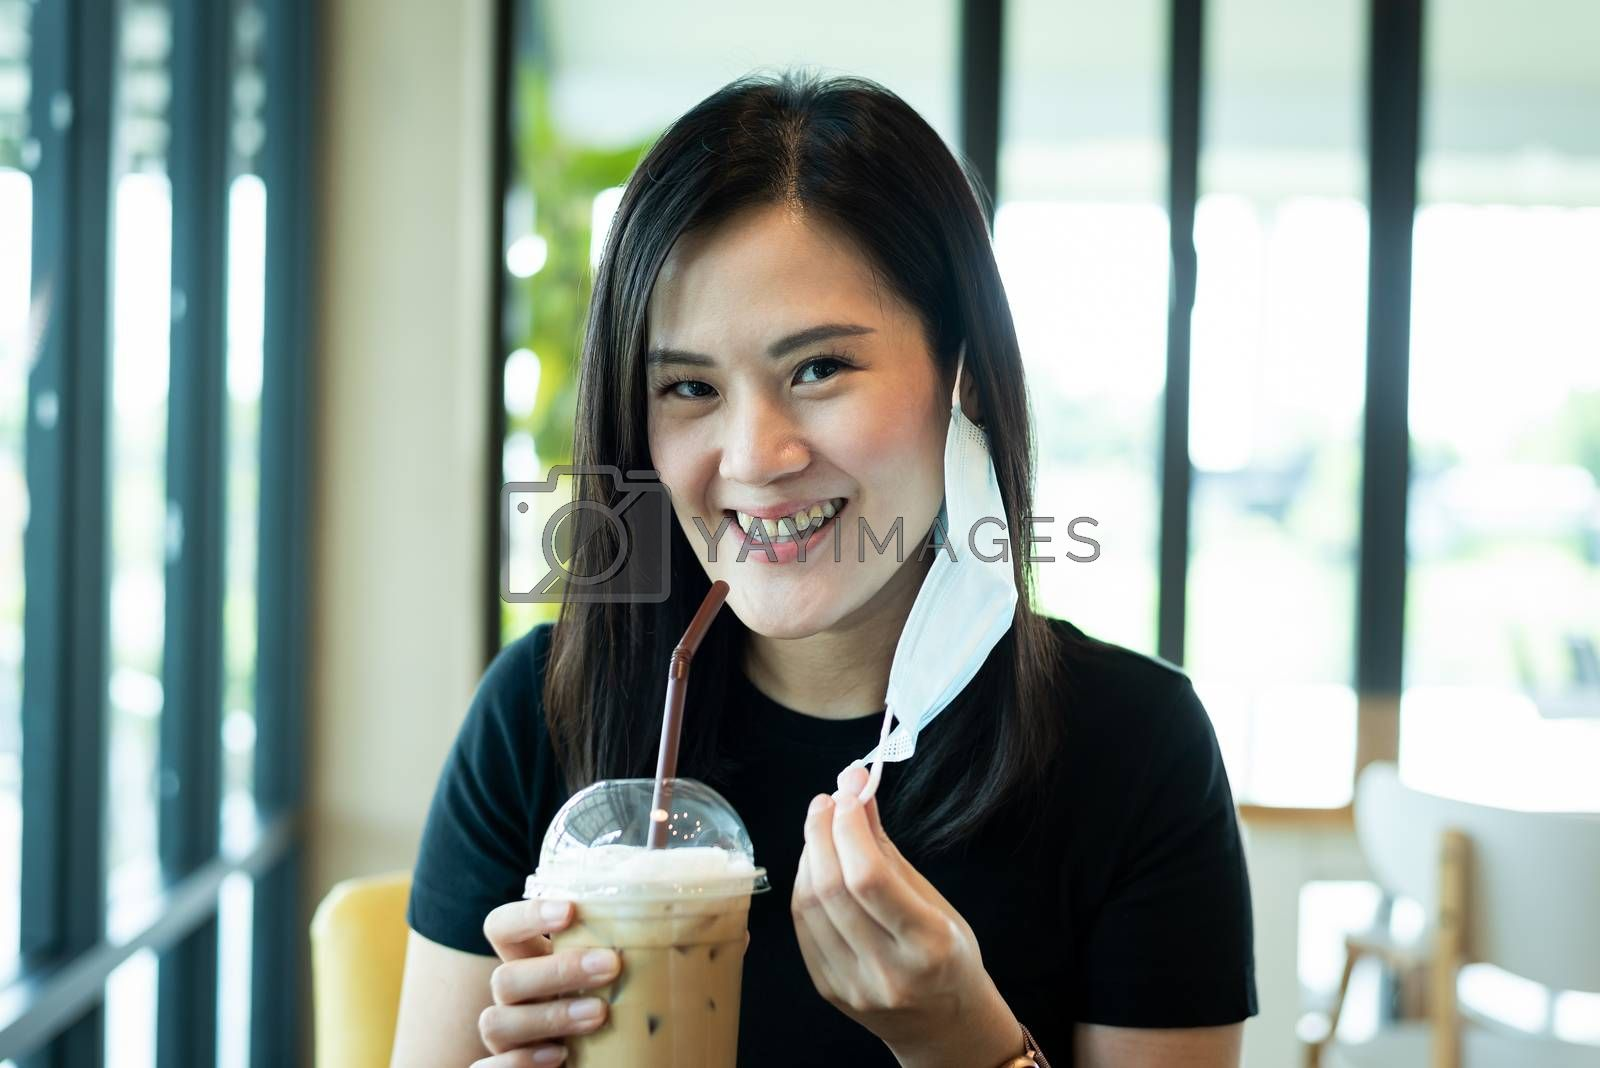 An Asian beautiful woman has to remove a blue mask and drinking an iced cappuccino with happiness in the morning.